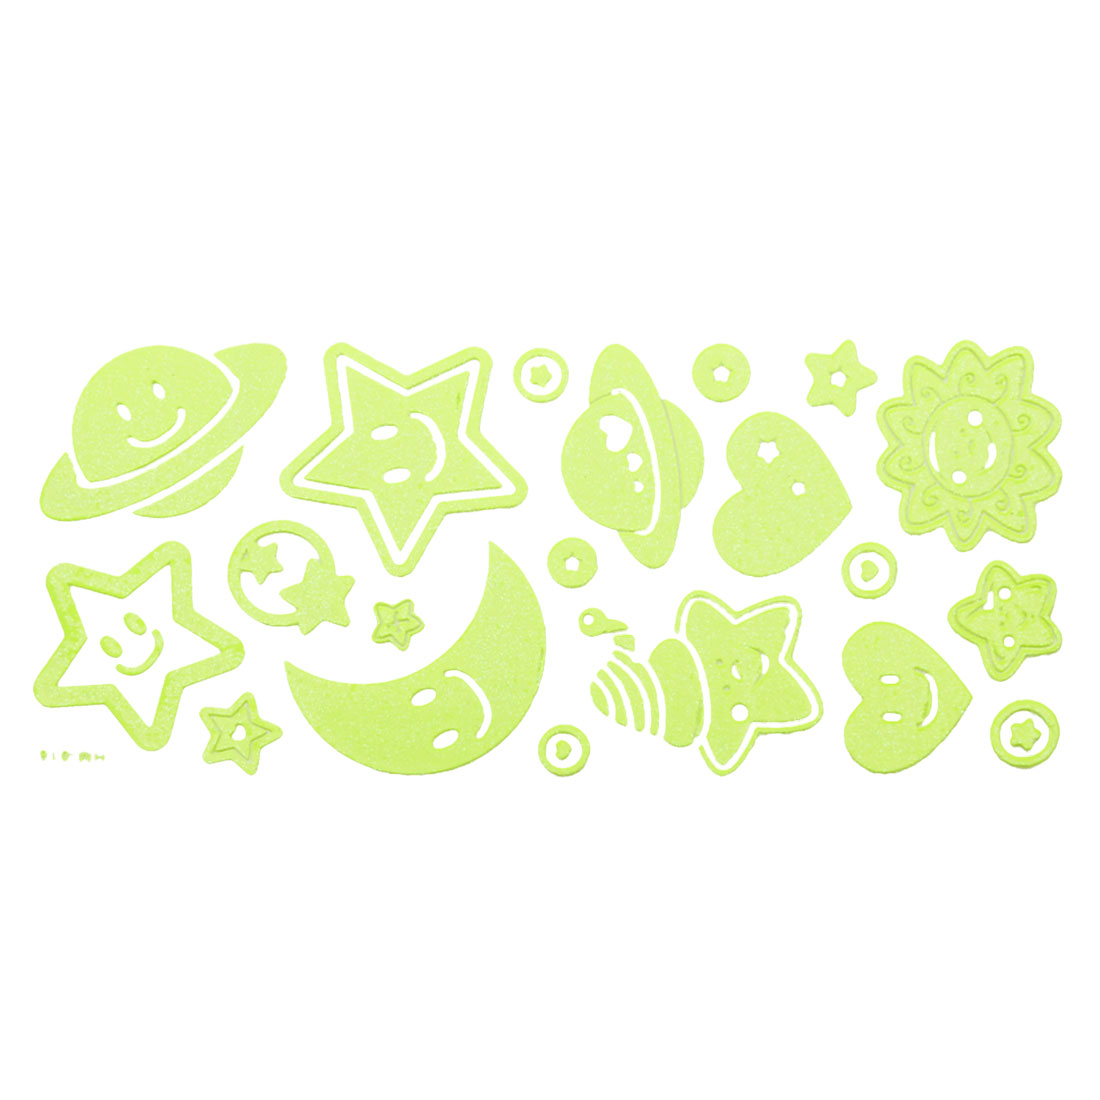 Room Decor Smile Moon Design Light Green Luminous Stickers 21 in 1 Set